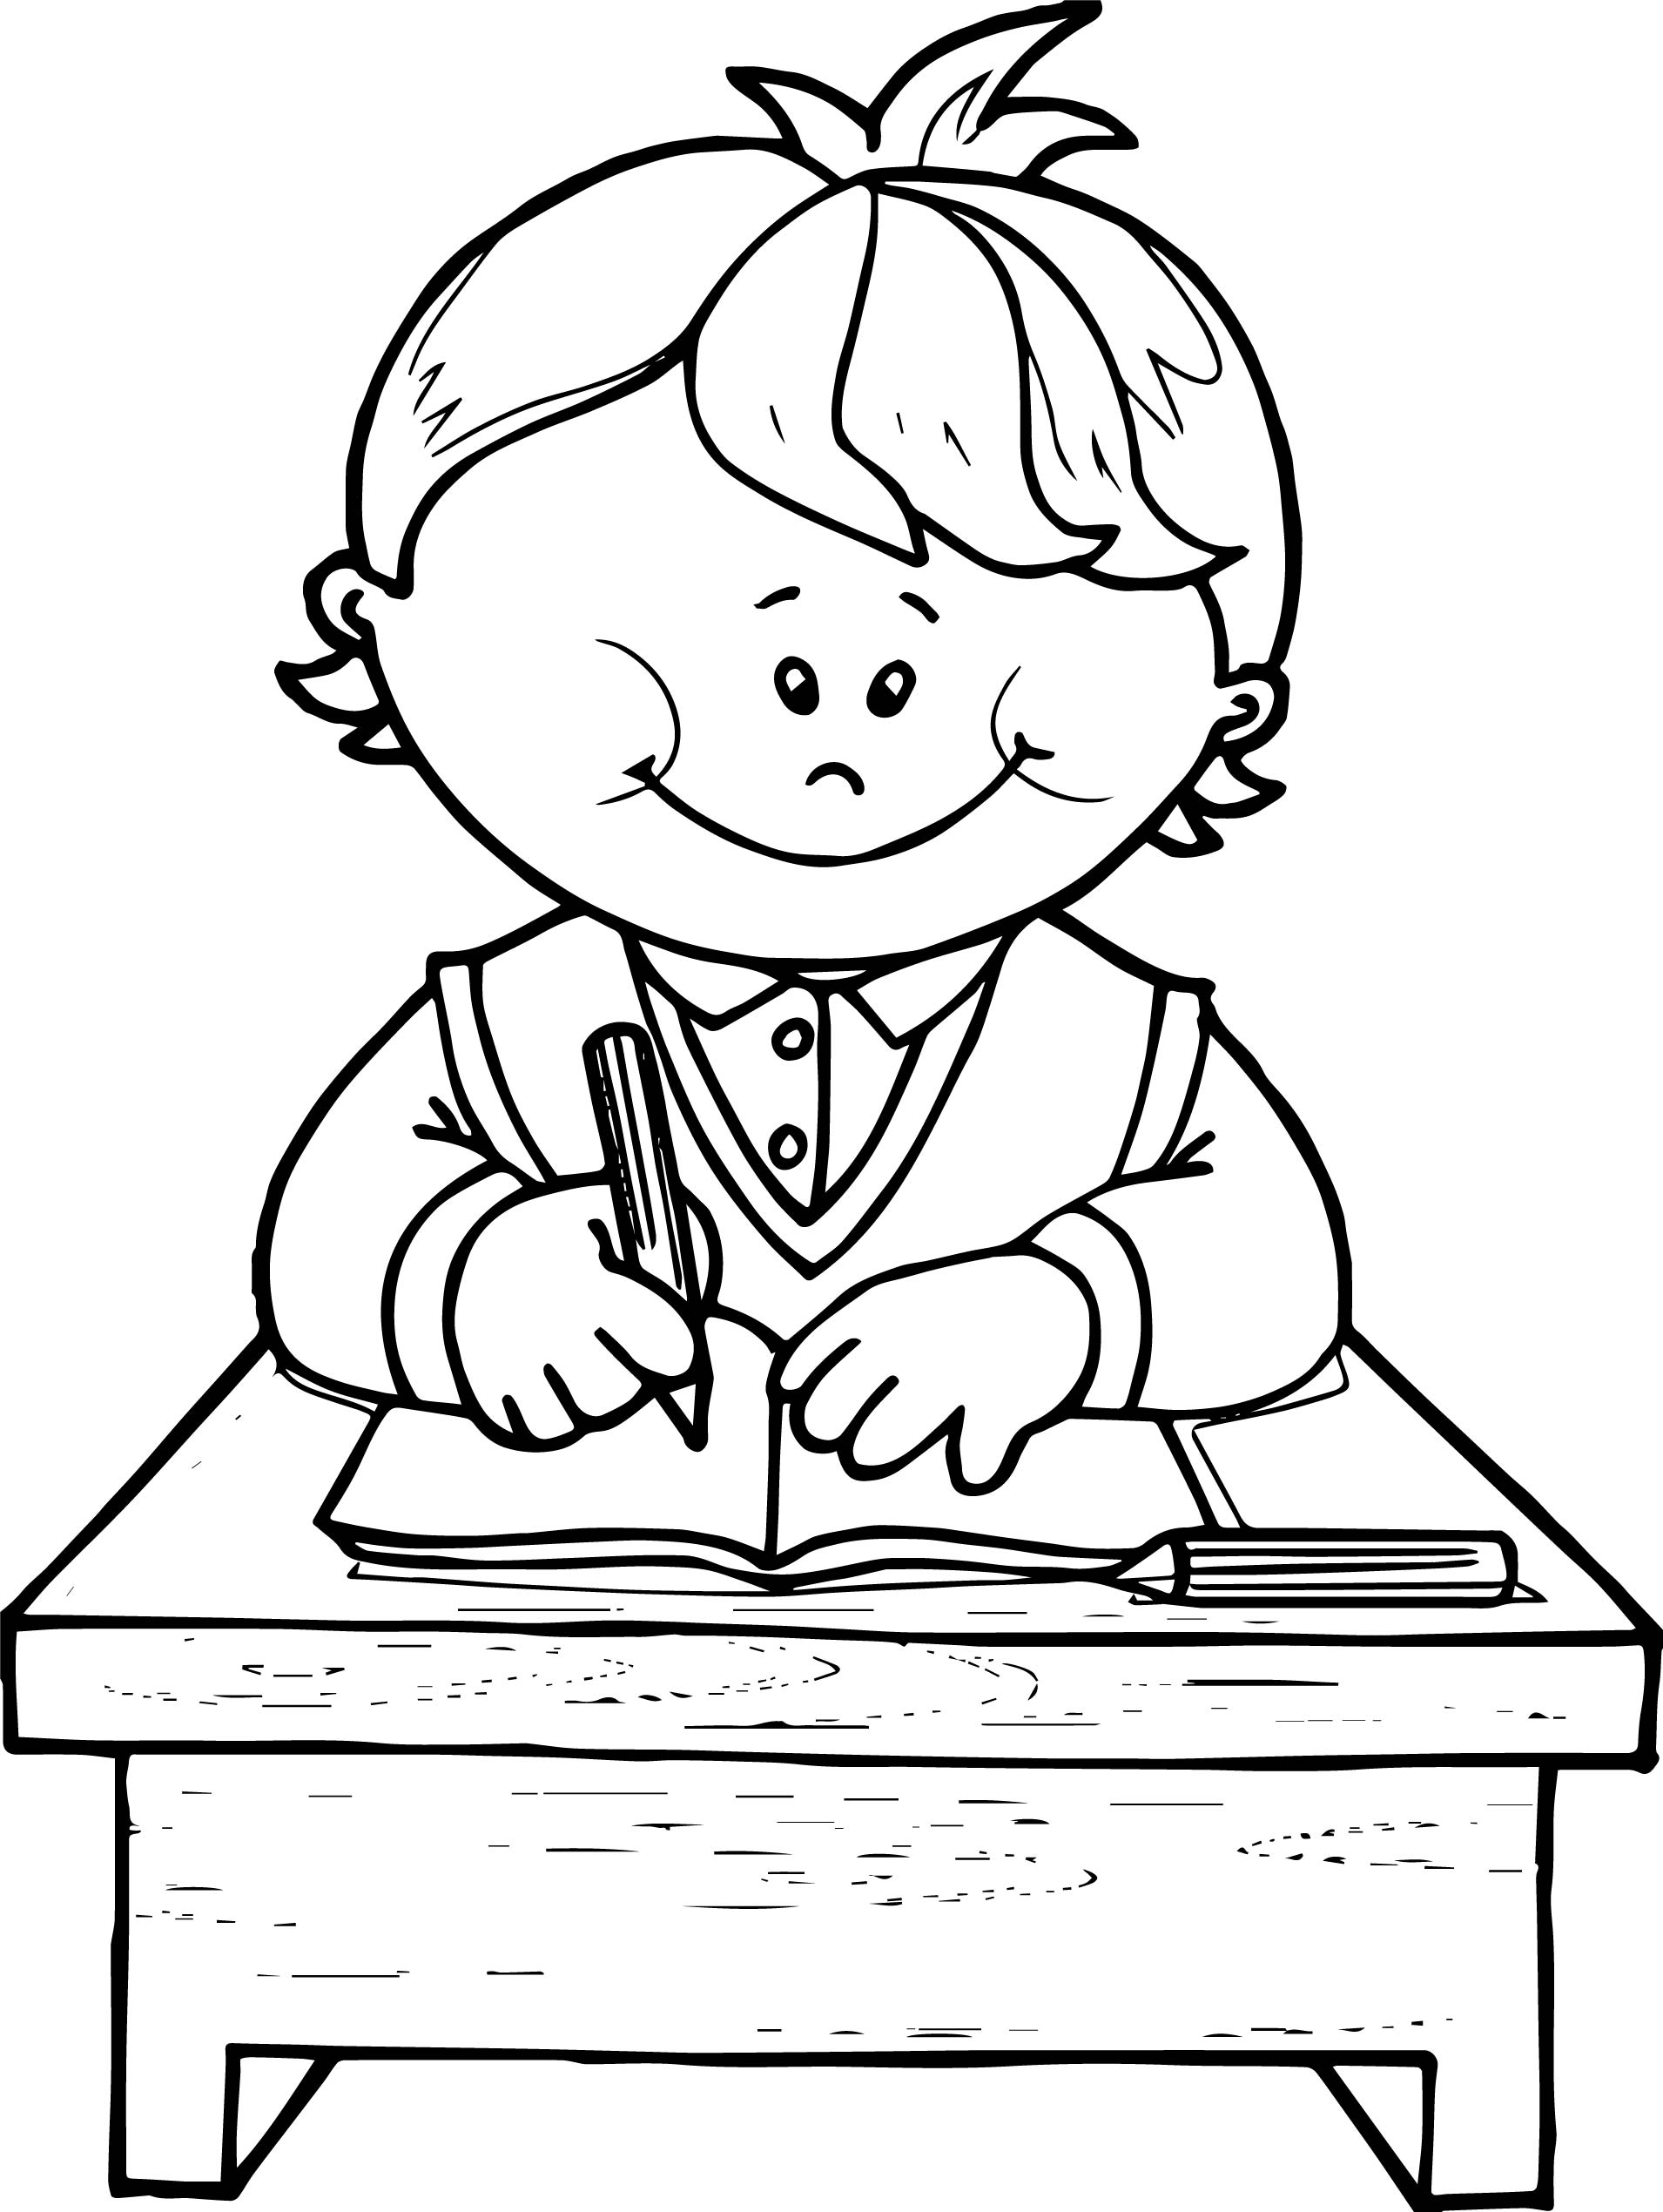 How To Write Journal Entry Clip Art Sketch Coloring Page